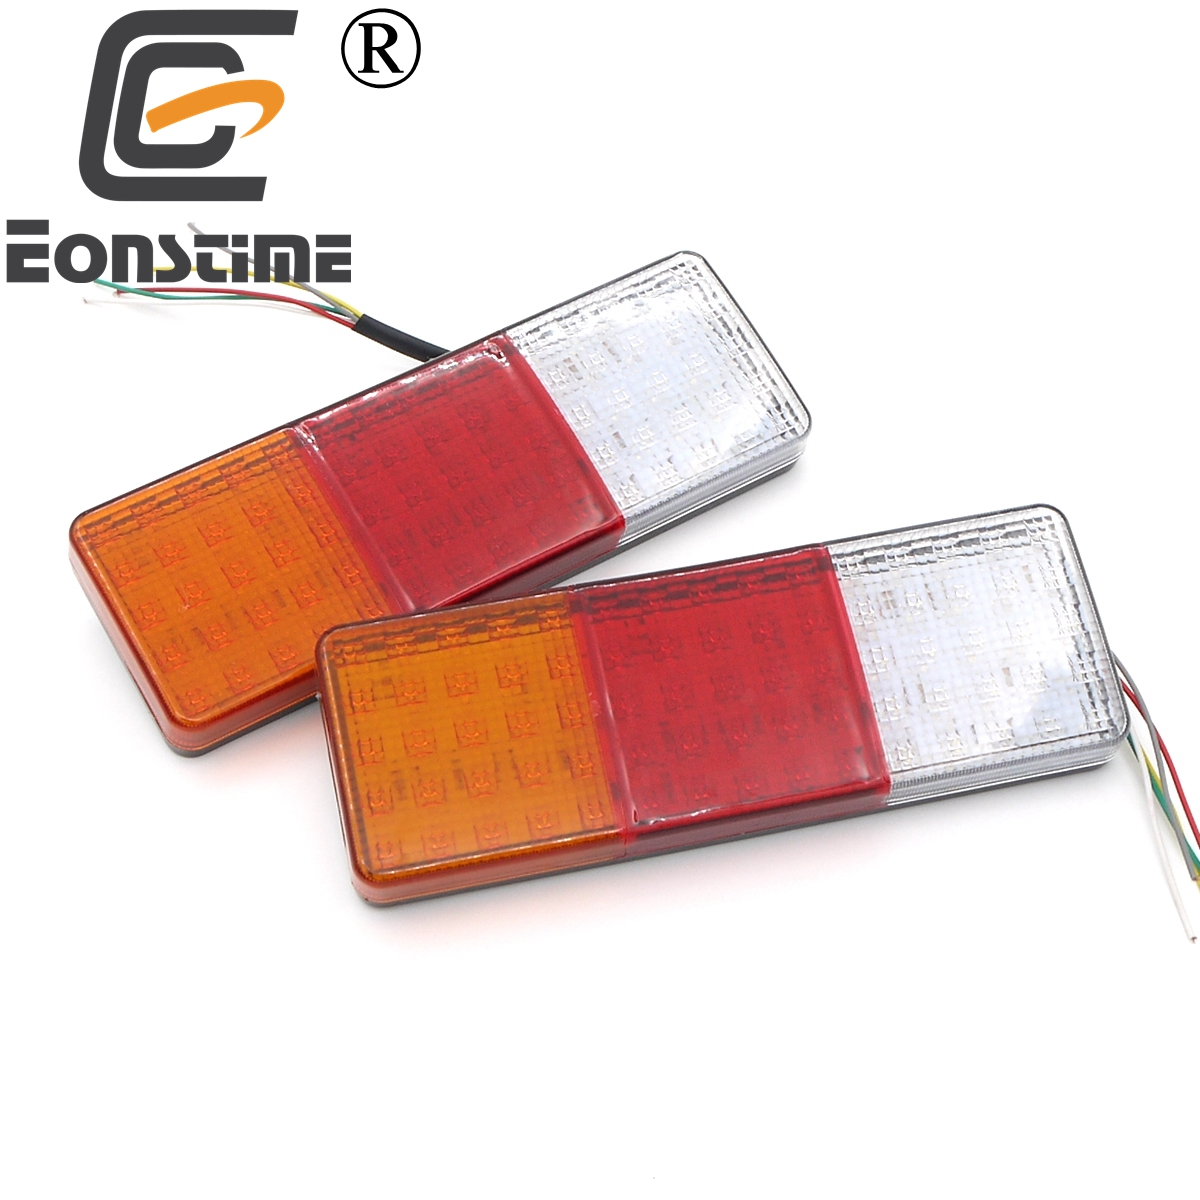 Eonstime 2pcs 12V/24V 75 LED Car Truck Tail Light Warning Lights Rear Lamps Waterproof Tailights Rear Parts Trailer Truck Light image